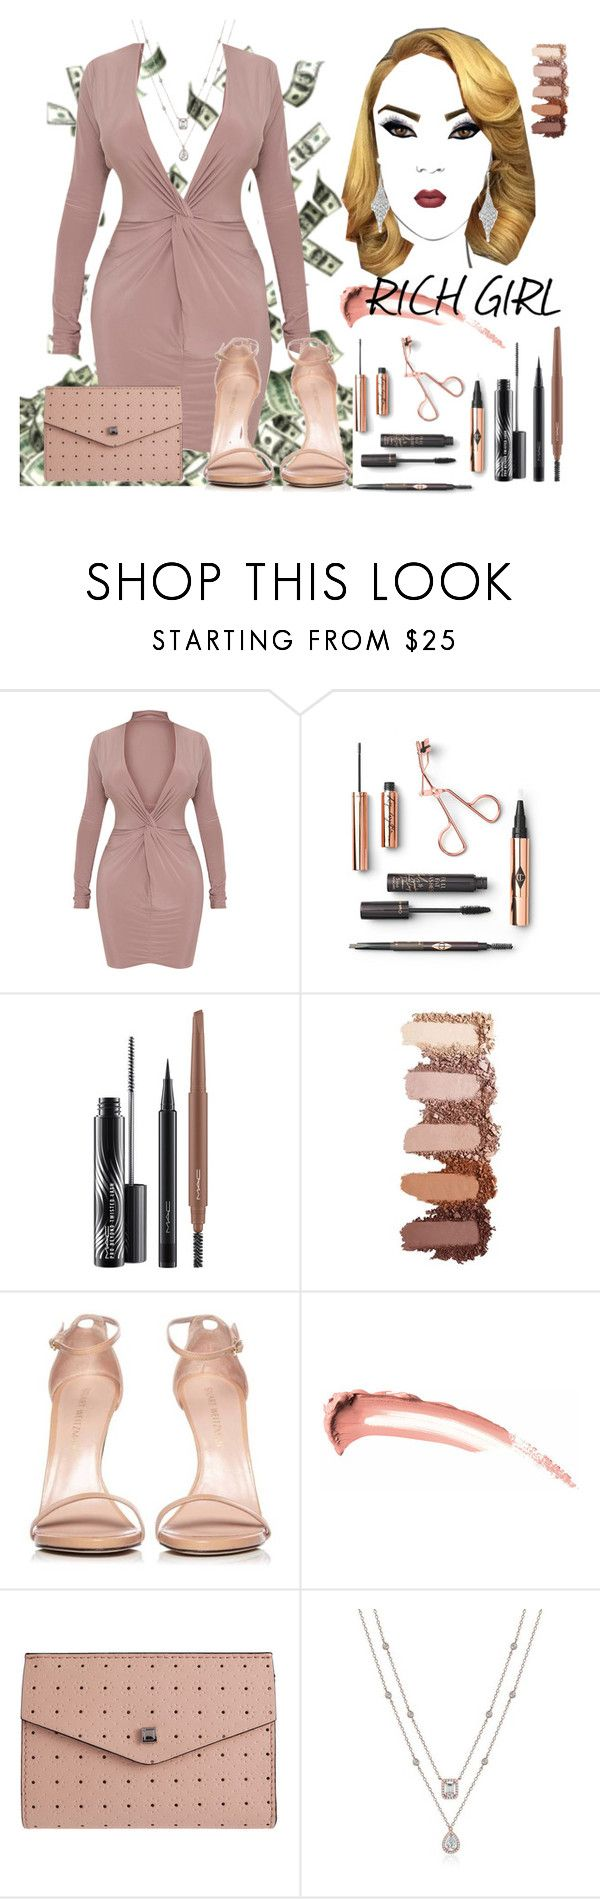 """Gwen Stefani- Rich Girl"" by texasradiance ❤ liked on Polyvore featuring MAC Cosmetics, Stuart Weitzman, Lodis and Allurez"